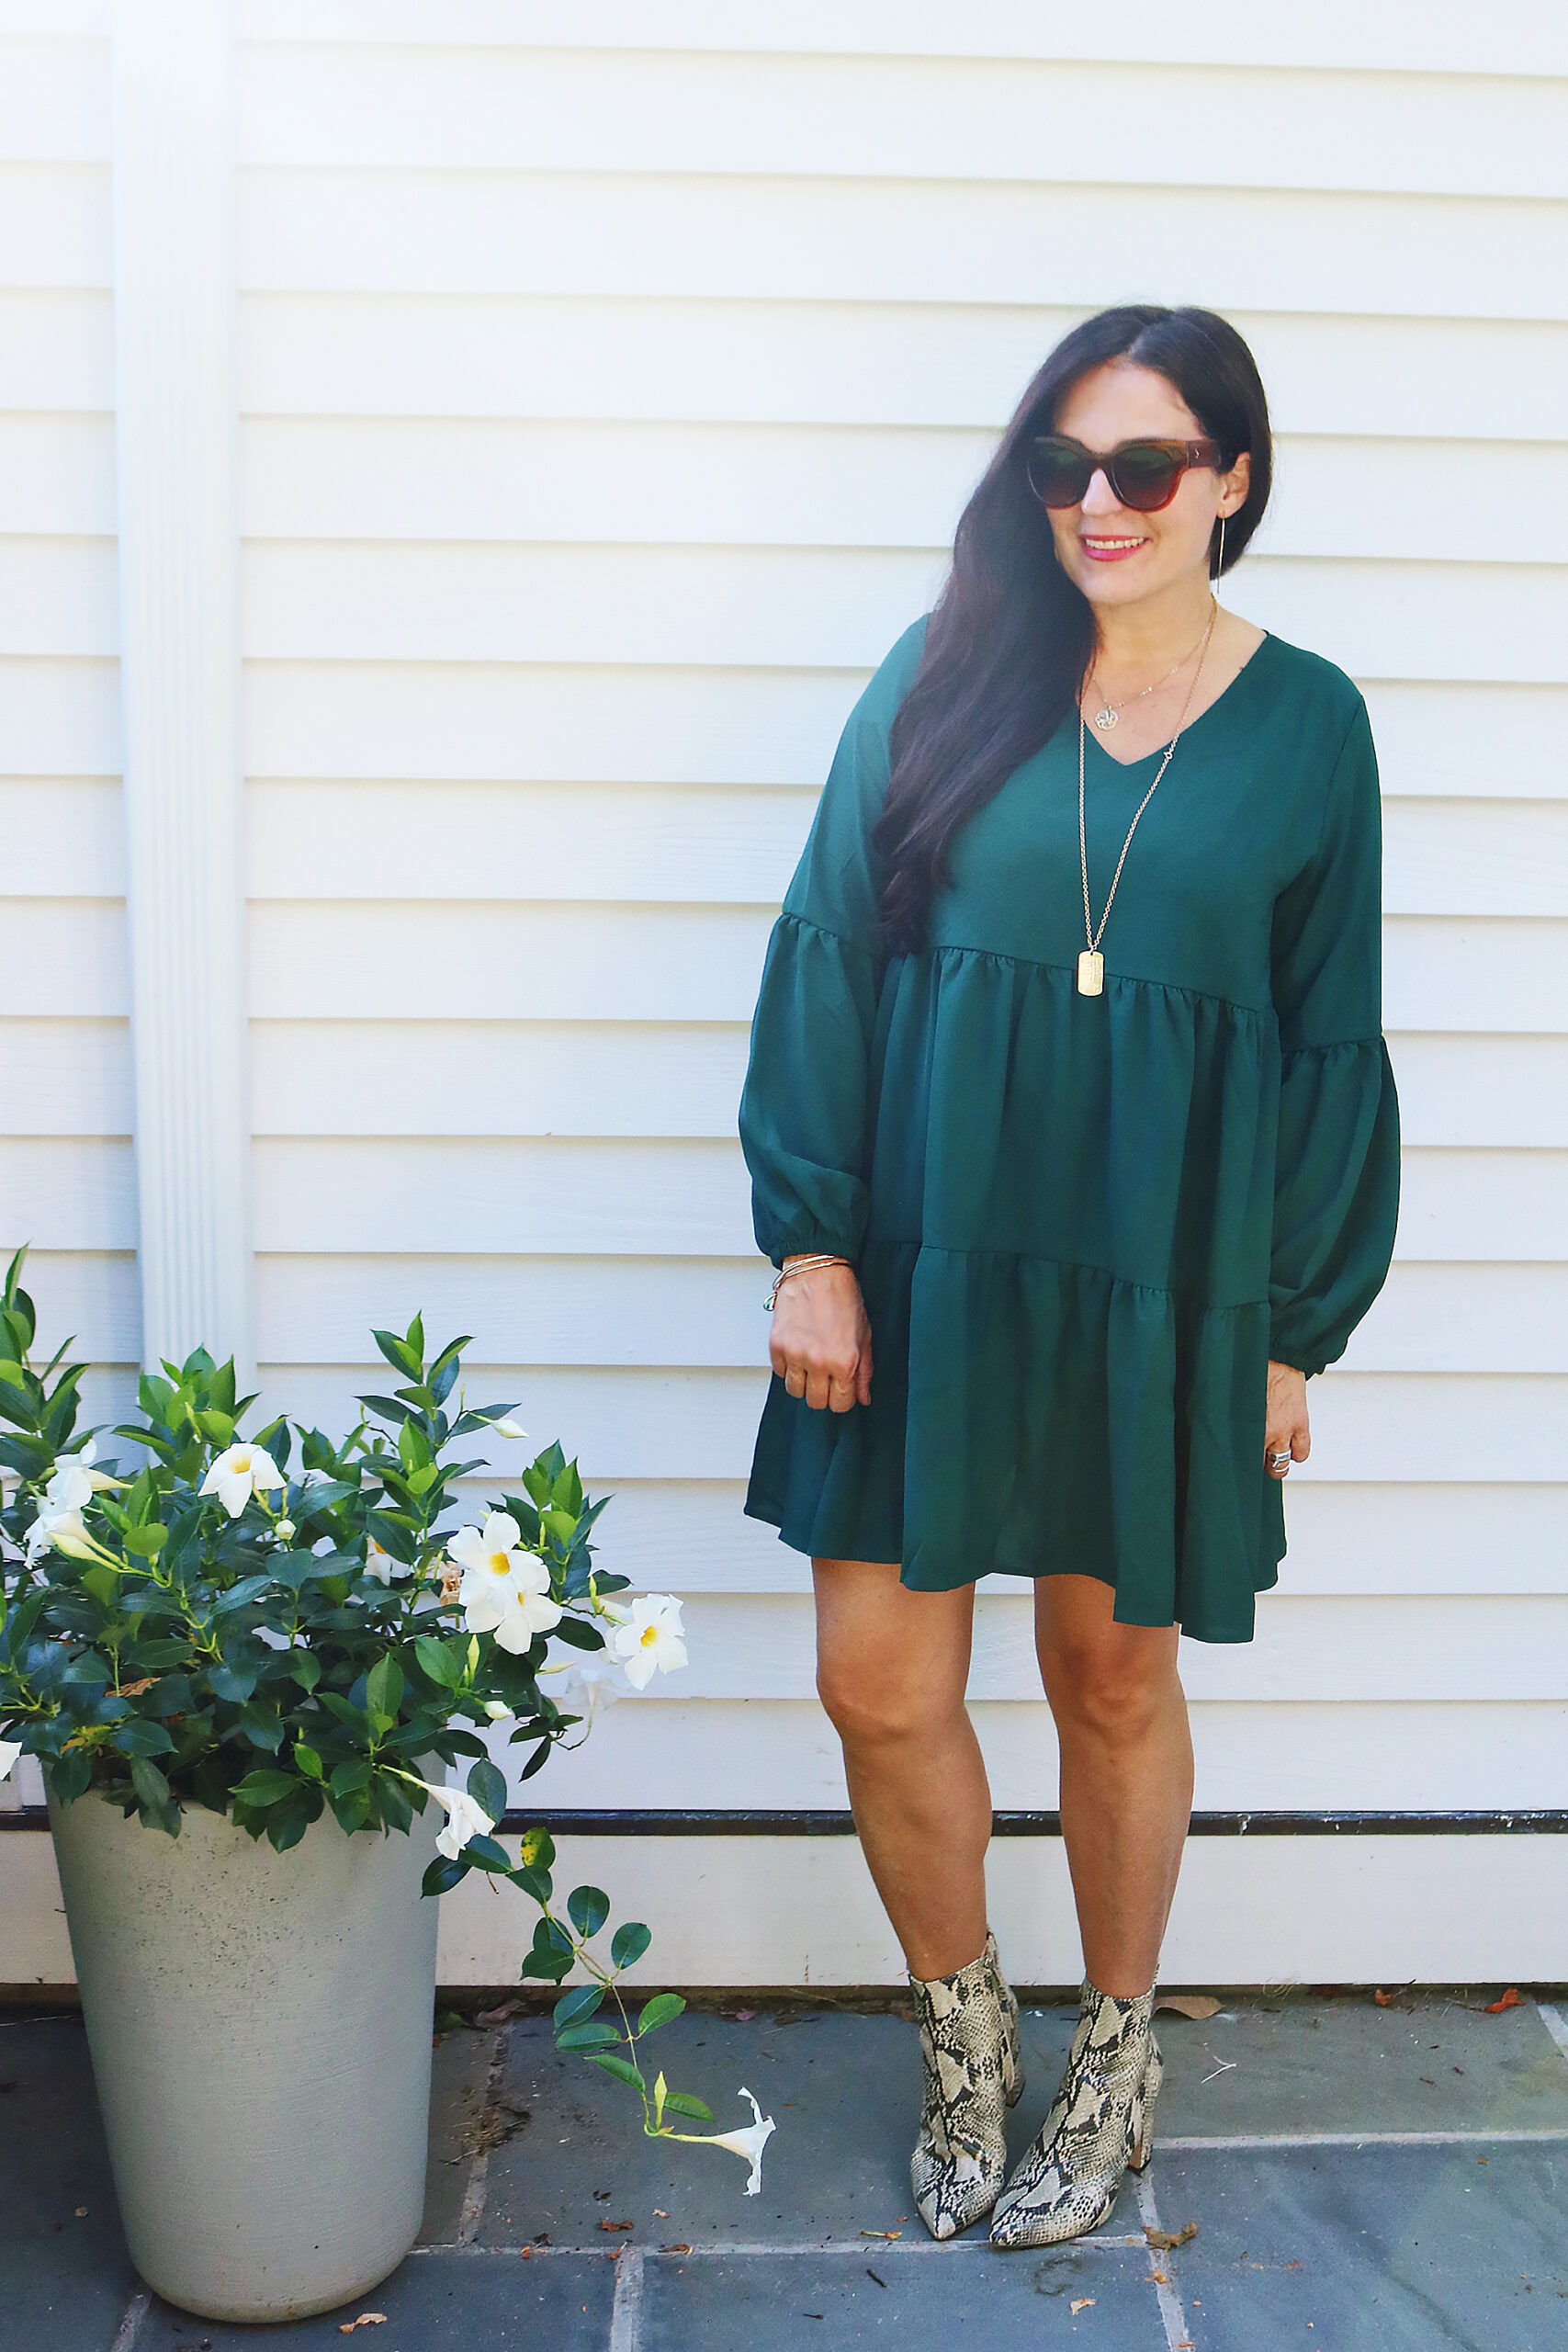 Fall styling in this fall dress with snakeskin boots which are discounted at Nordstrom Anniversary Sale picks || Top CT Lifestyle Blogger Darling Darleen